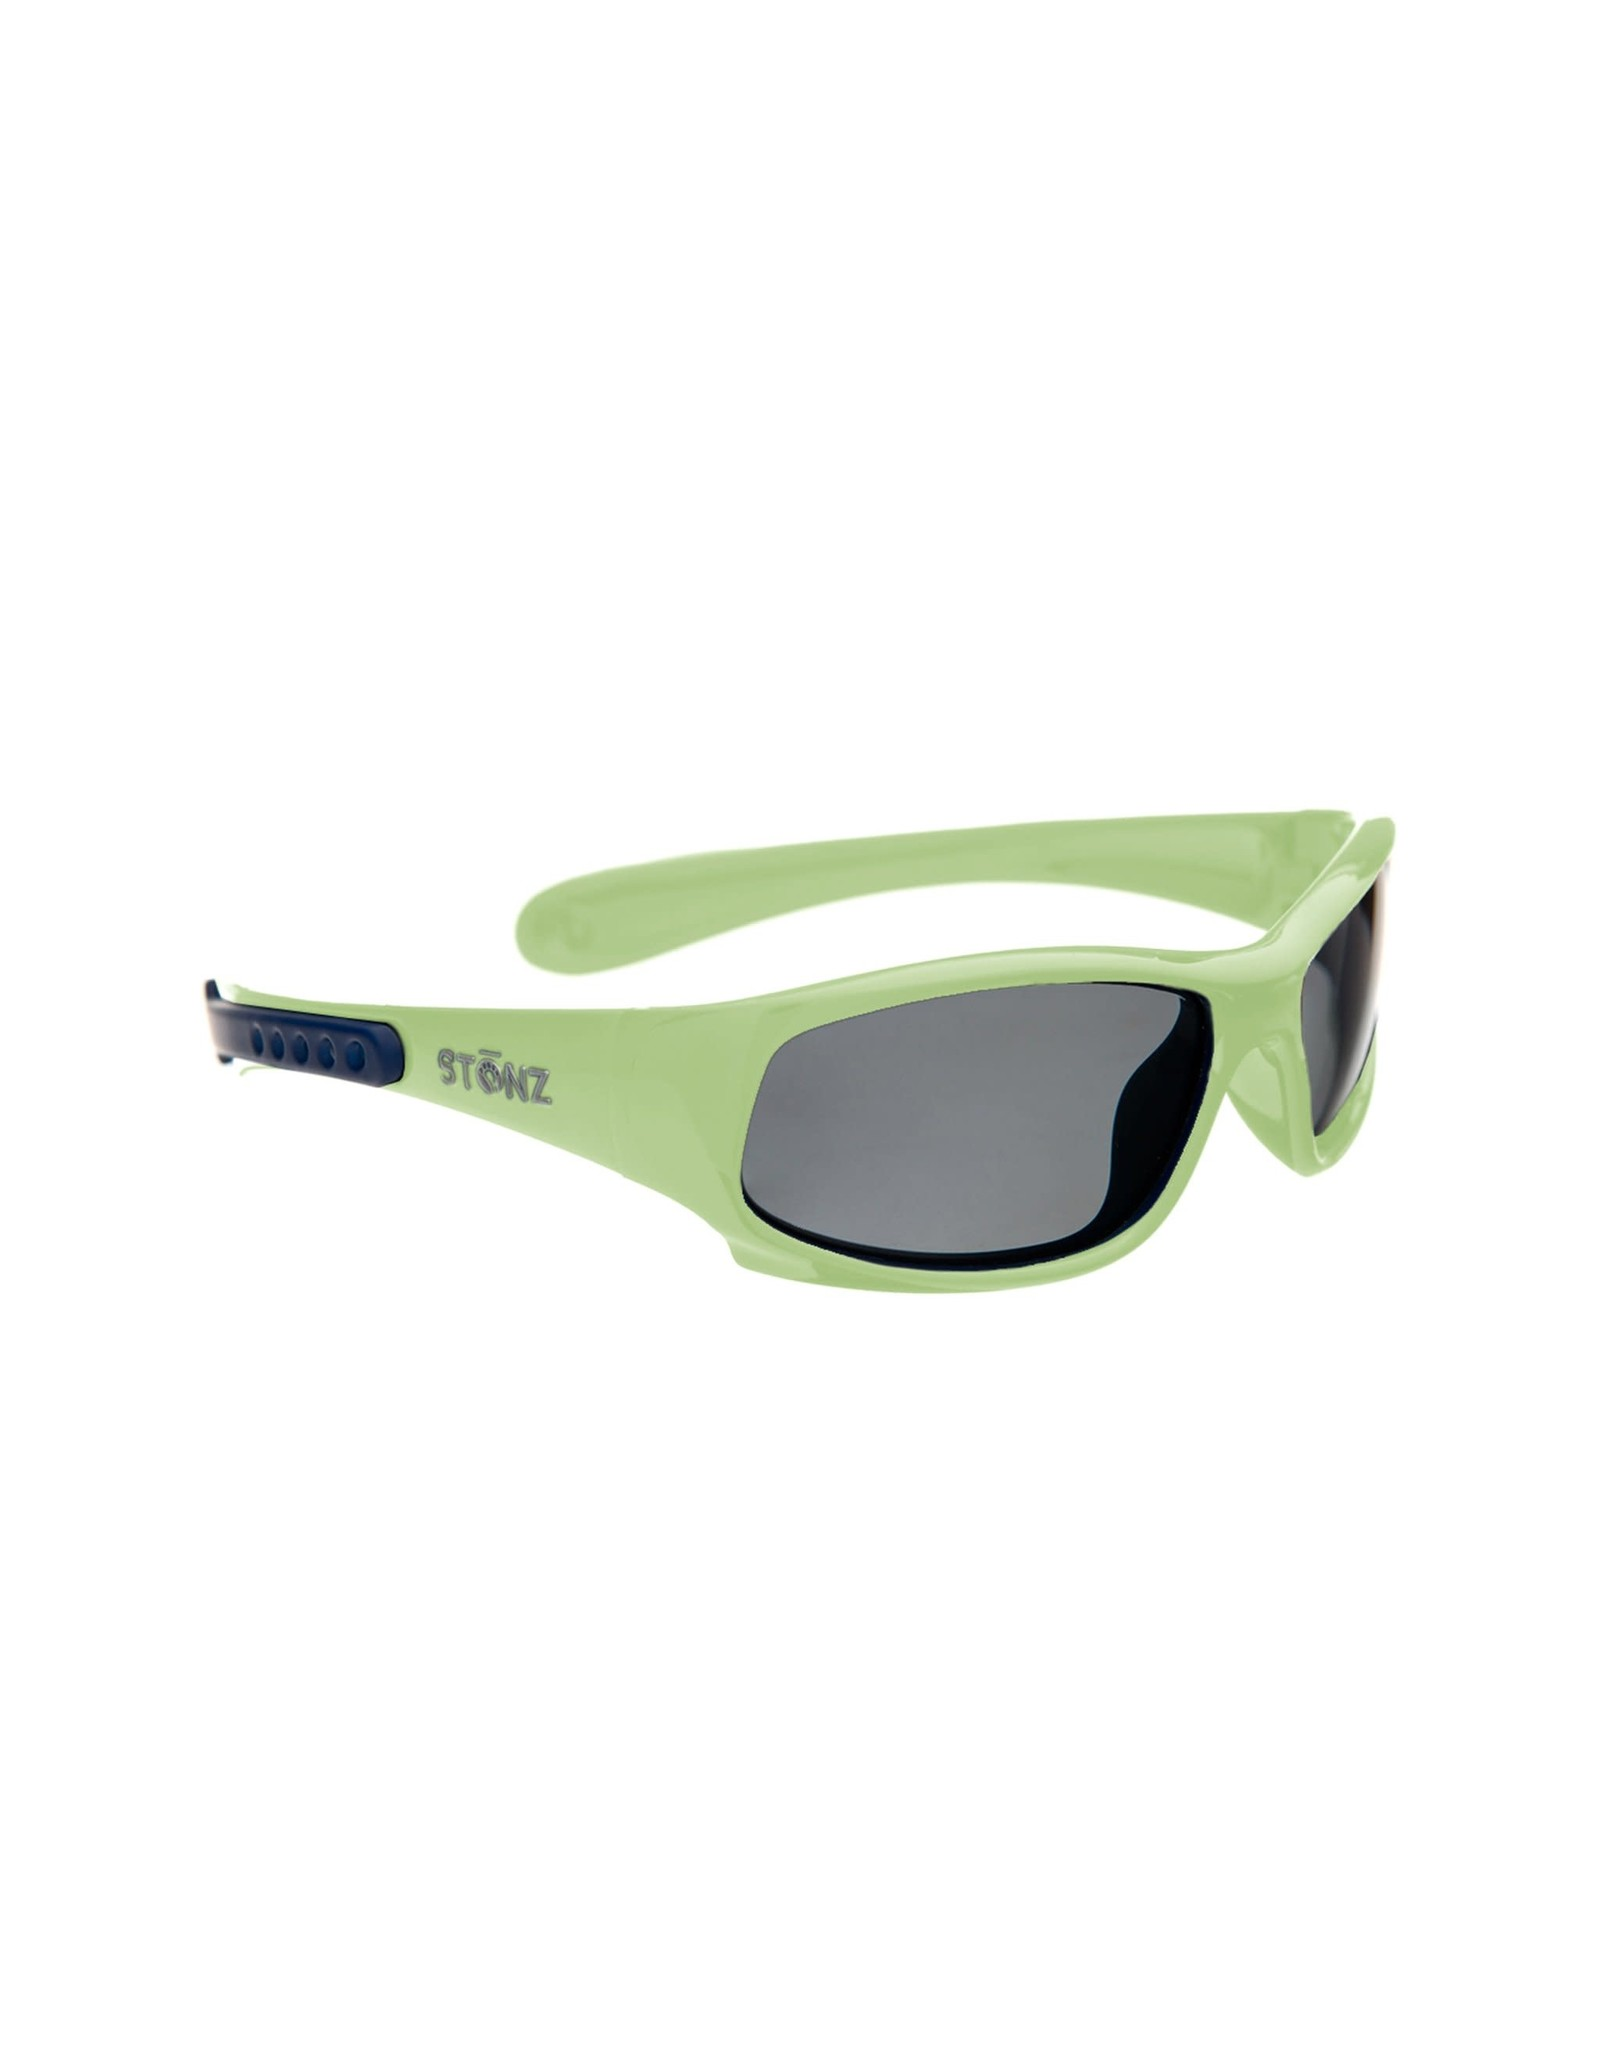 Stonz Stonz Sport Sunnies, Mint Green/Navy 0-2 years